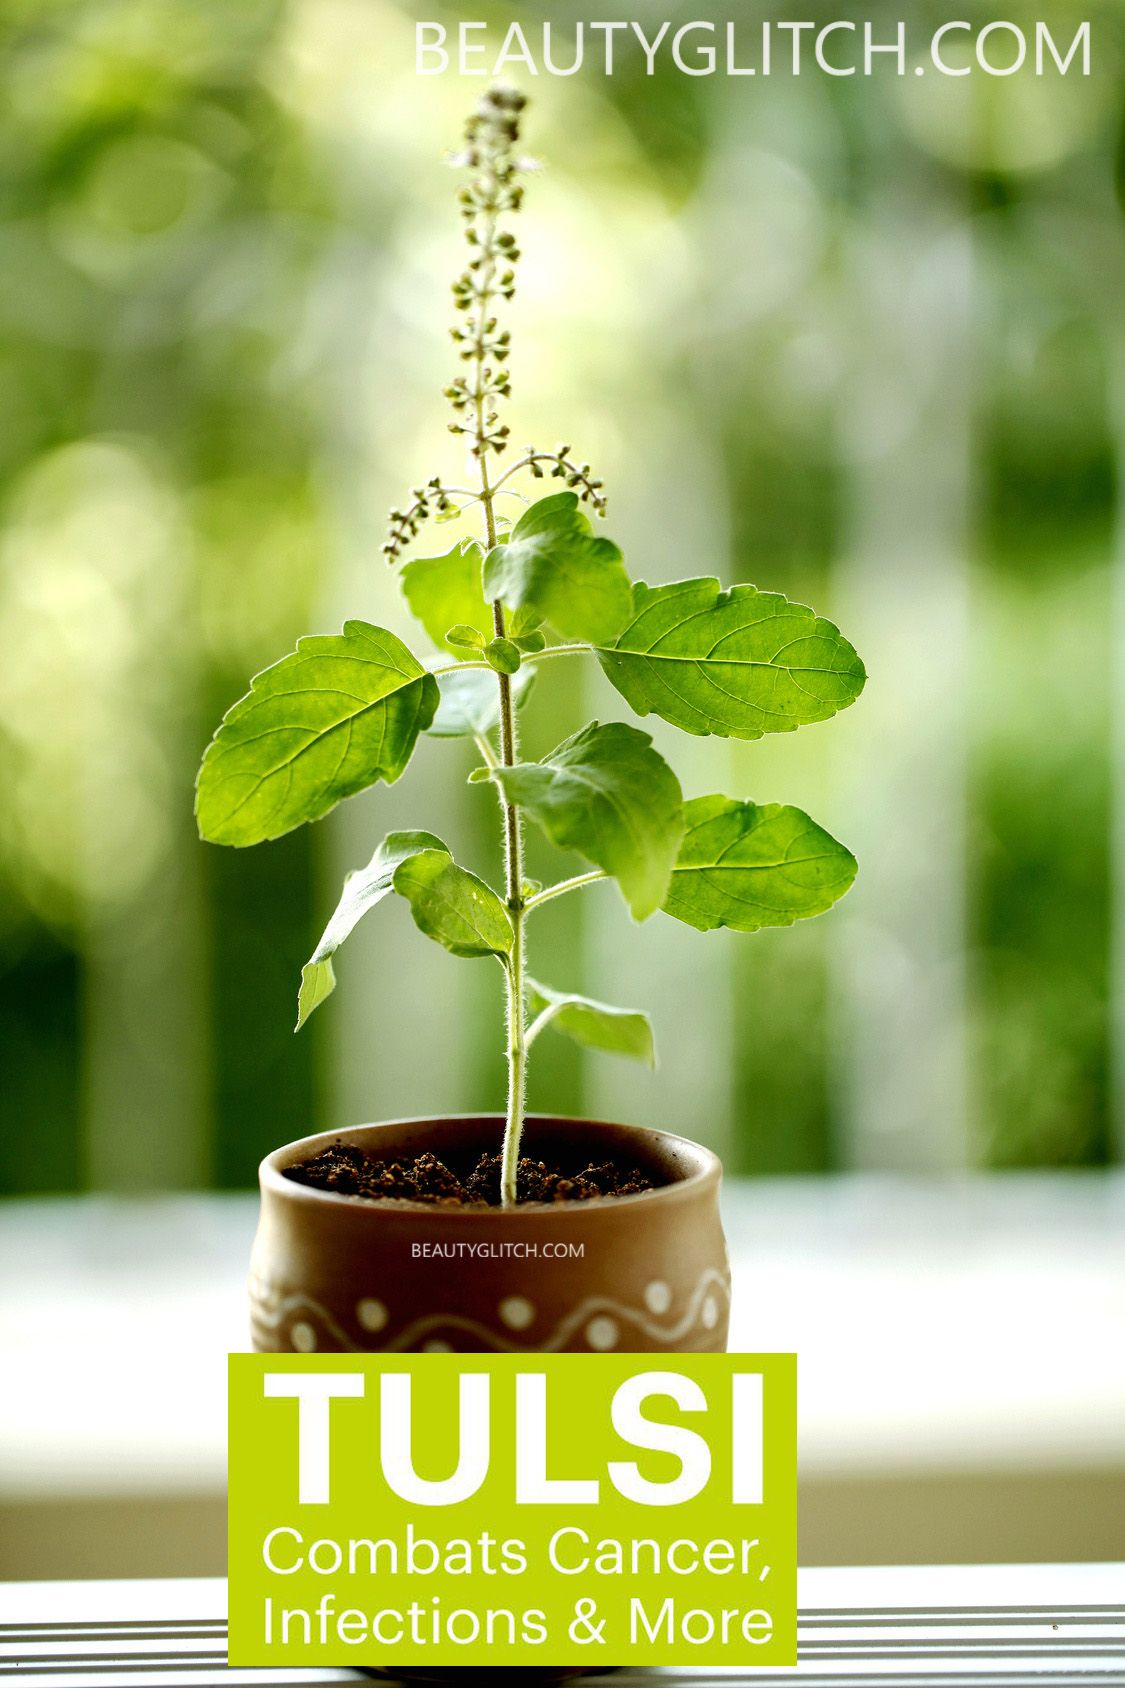 5 Medicinal Benefits Of Tulsi (Basil) That Could Save You